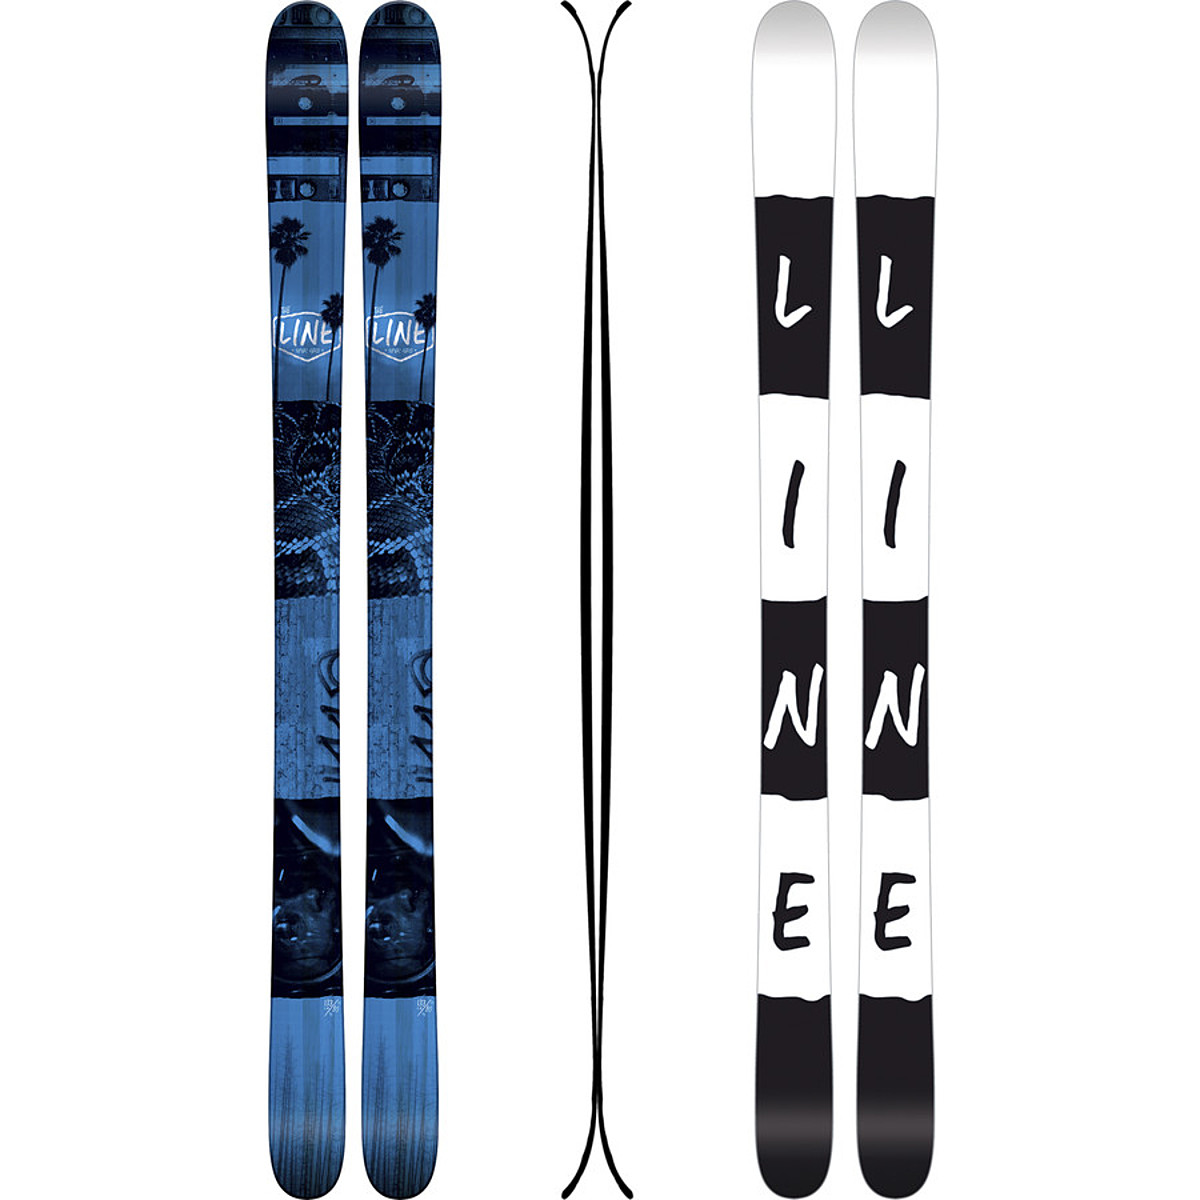 Line Skis Super Hero Ski